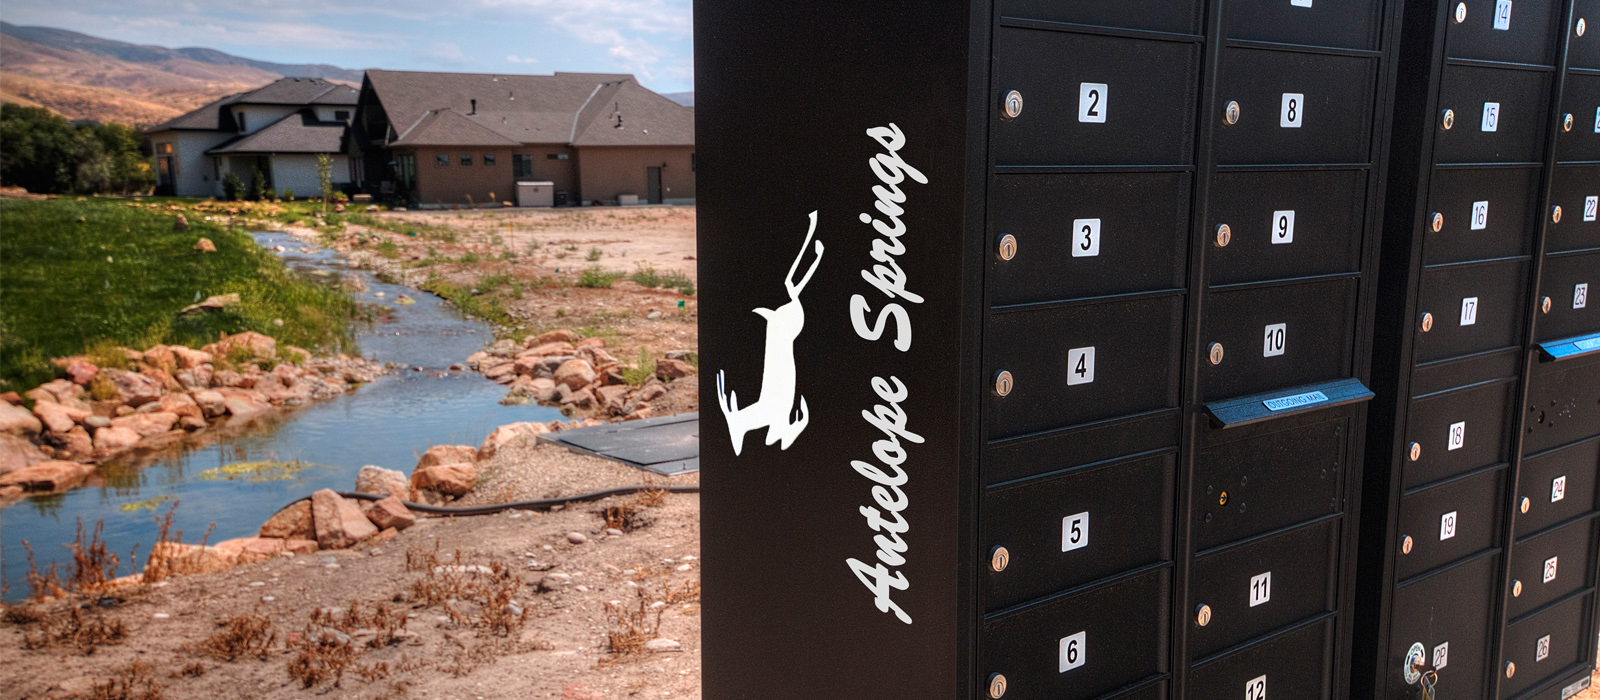 Antelope Springs Community Mailboxes